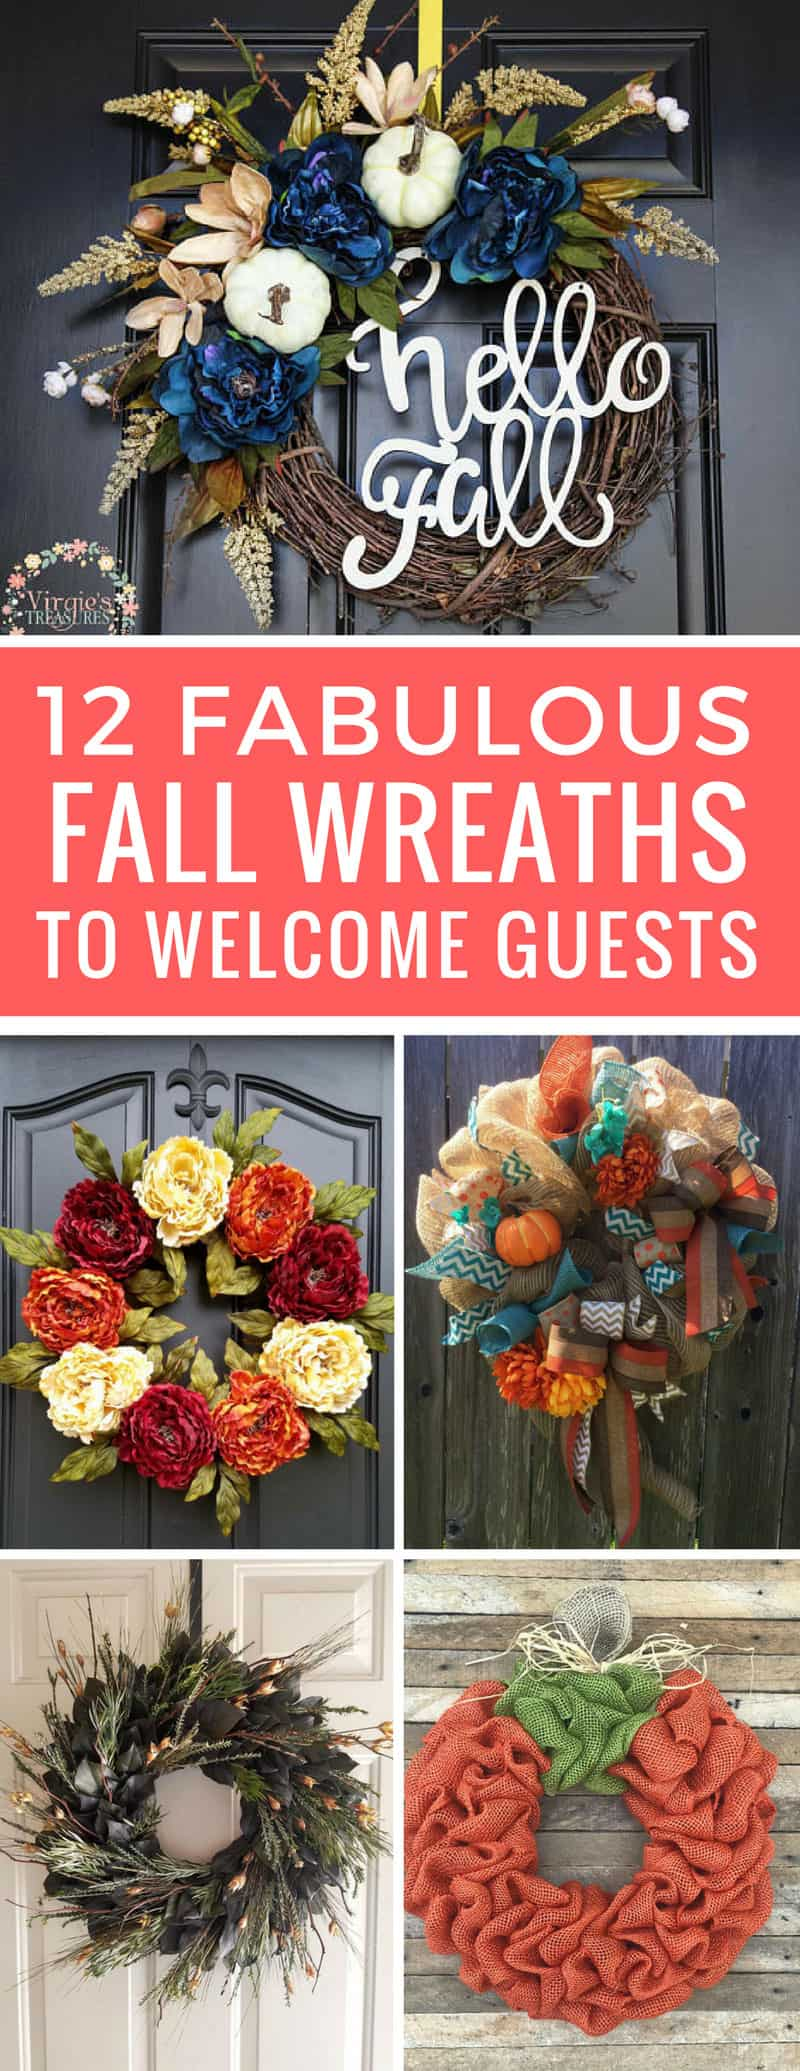 These Fall wreaths are beautiful! I can't wait to hang one on my front door! Thanks for sharing!